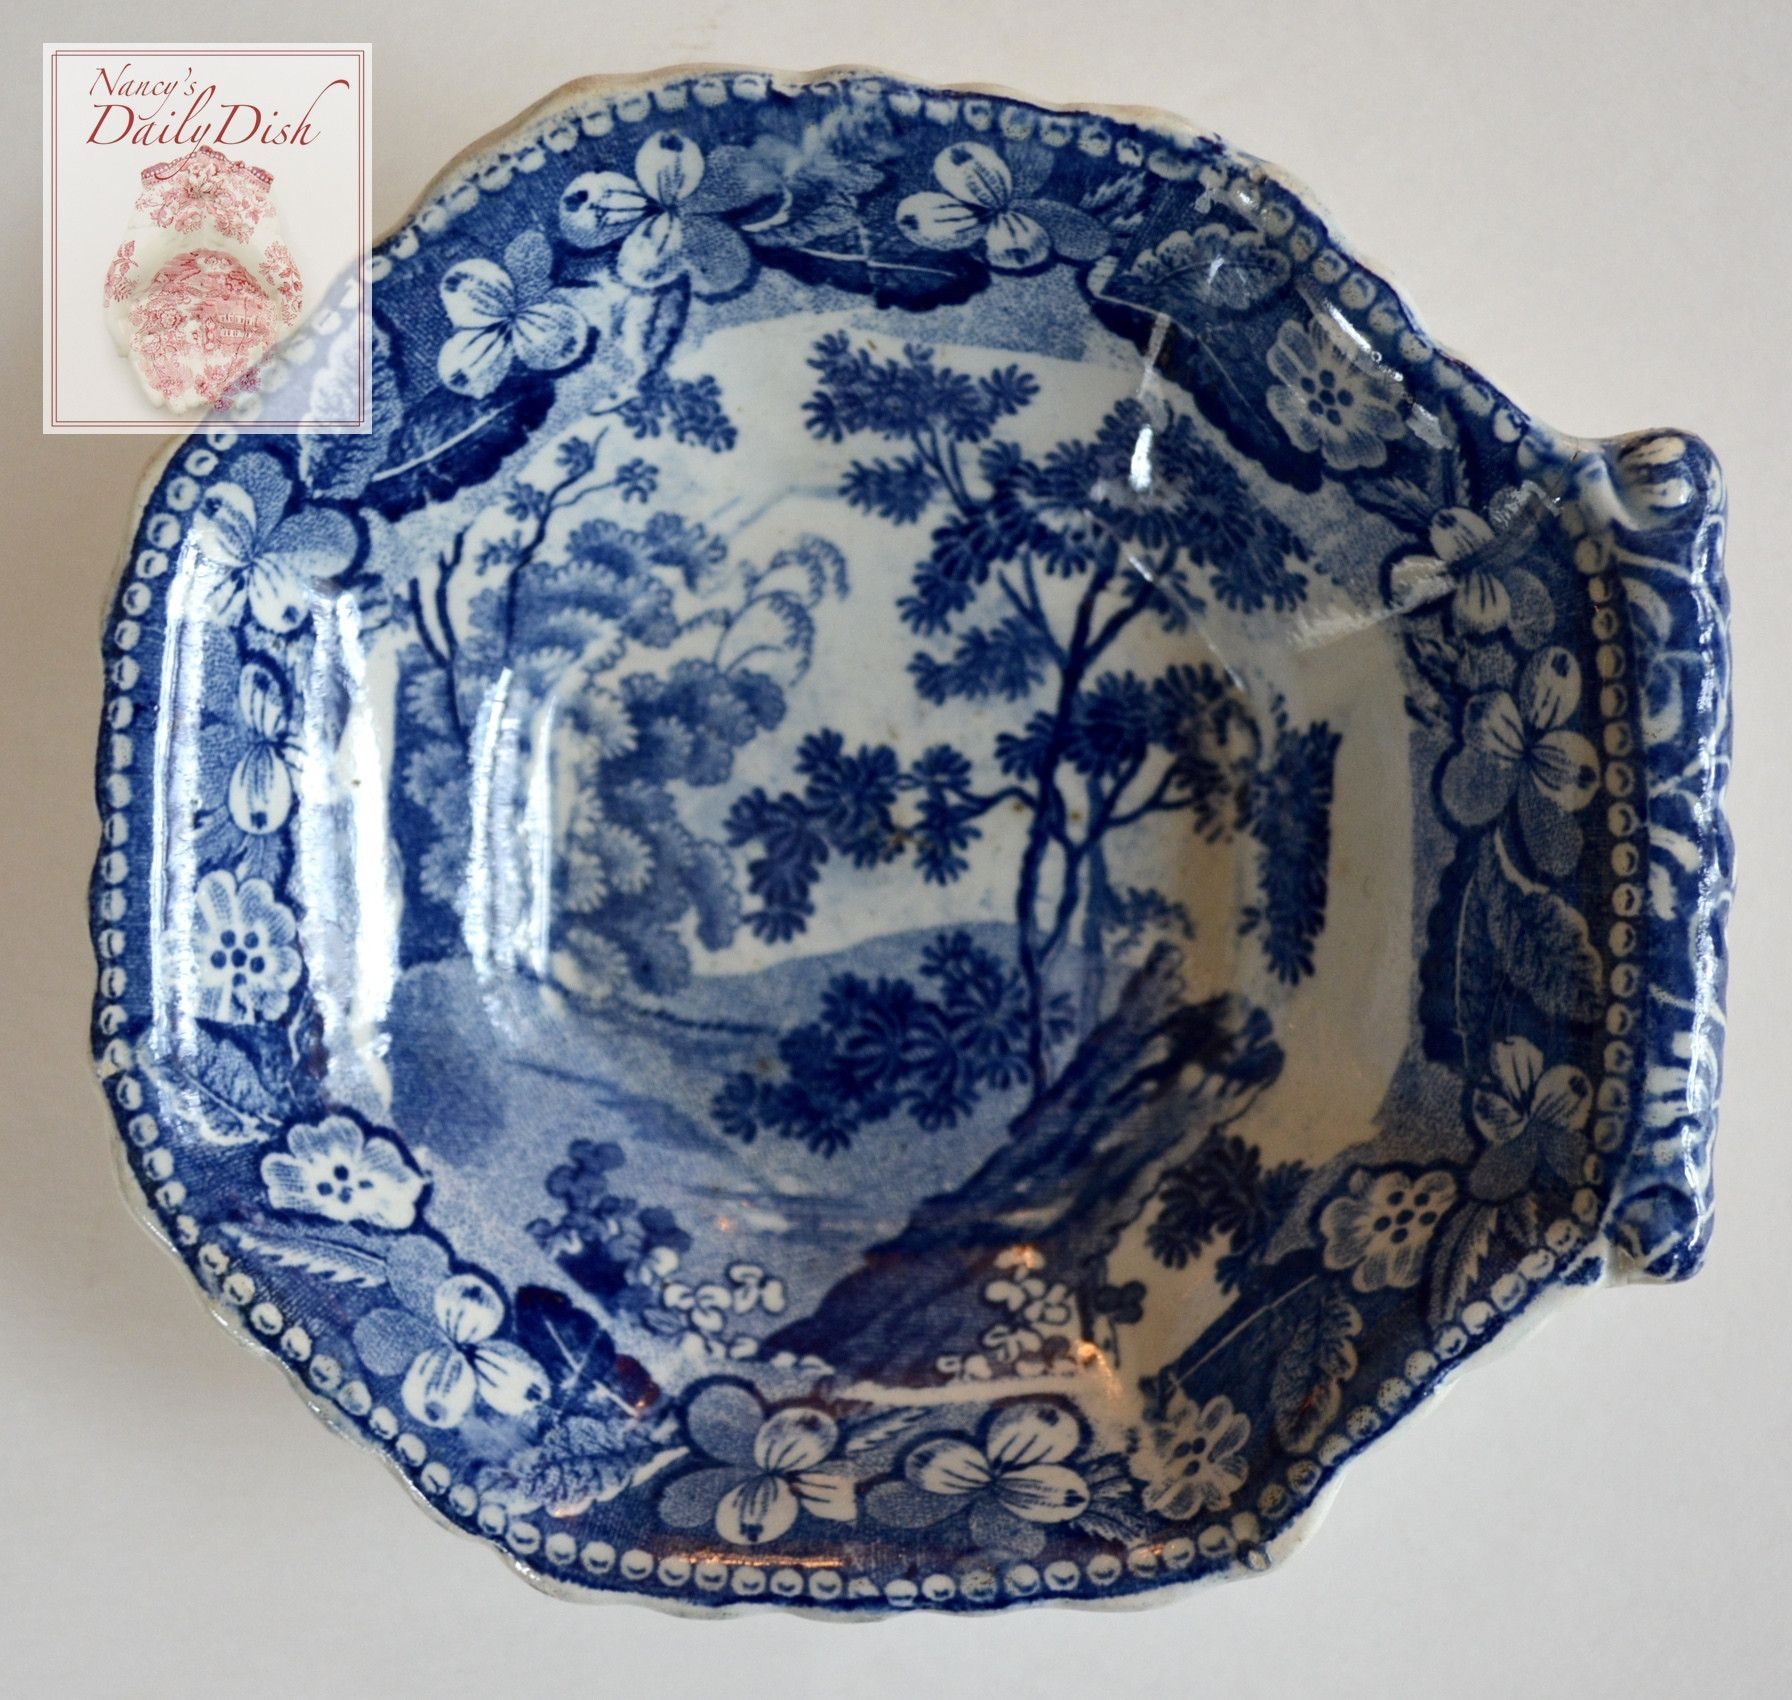 Antique late 18th or early 19th century stoke upon trent blue porcelain reviewsmspy